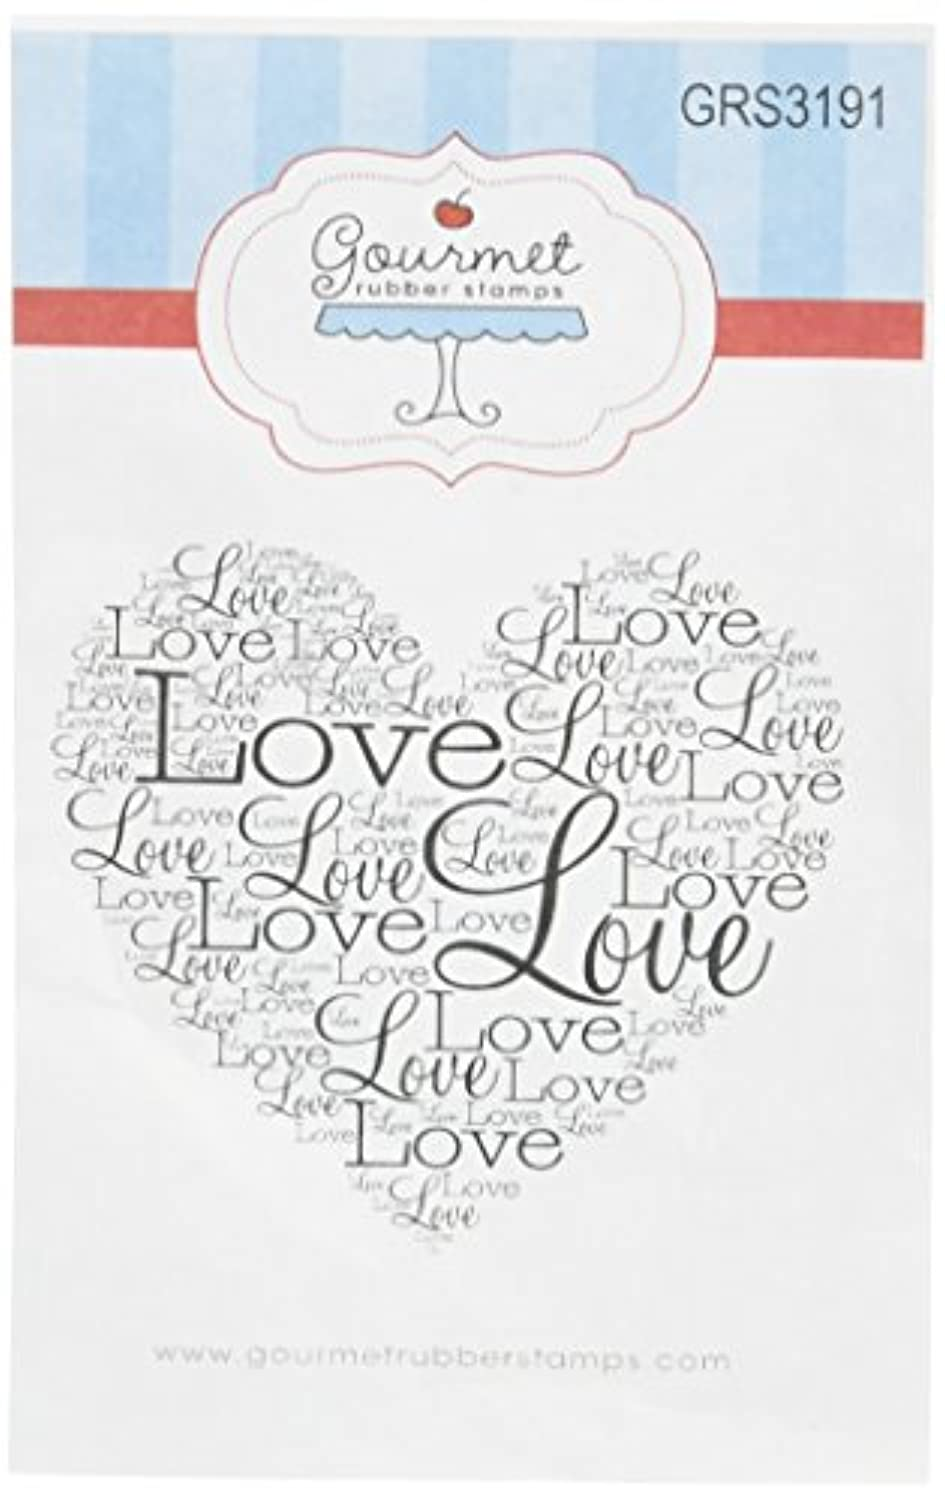 Gourmet Rubber Stamps Work Love Heart Cling Stamps, 2.75 x 4.75